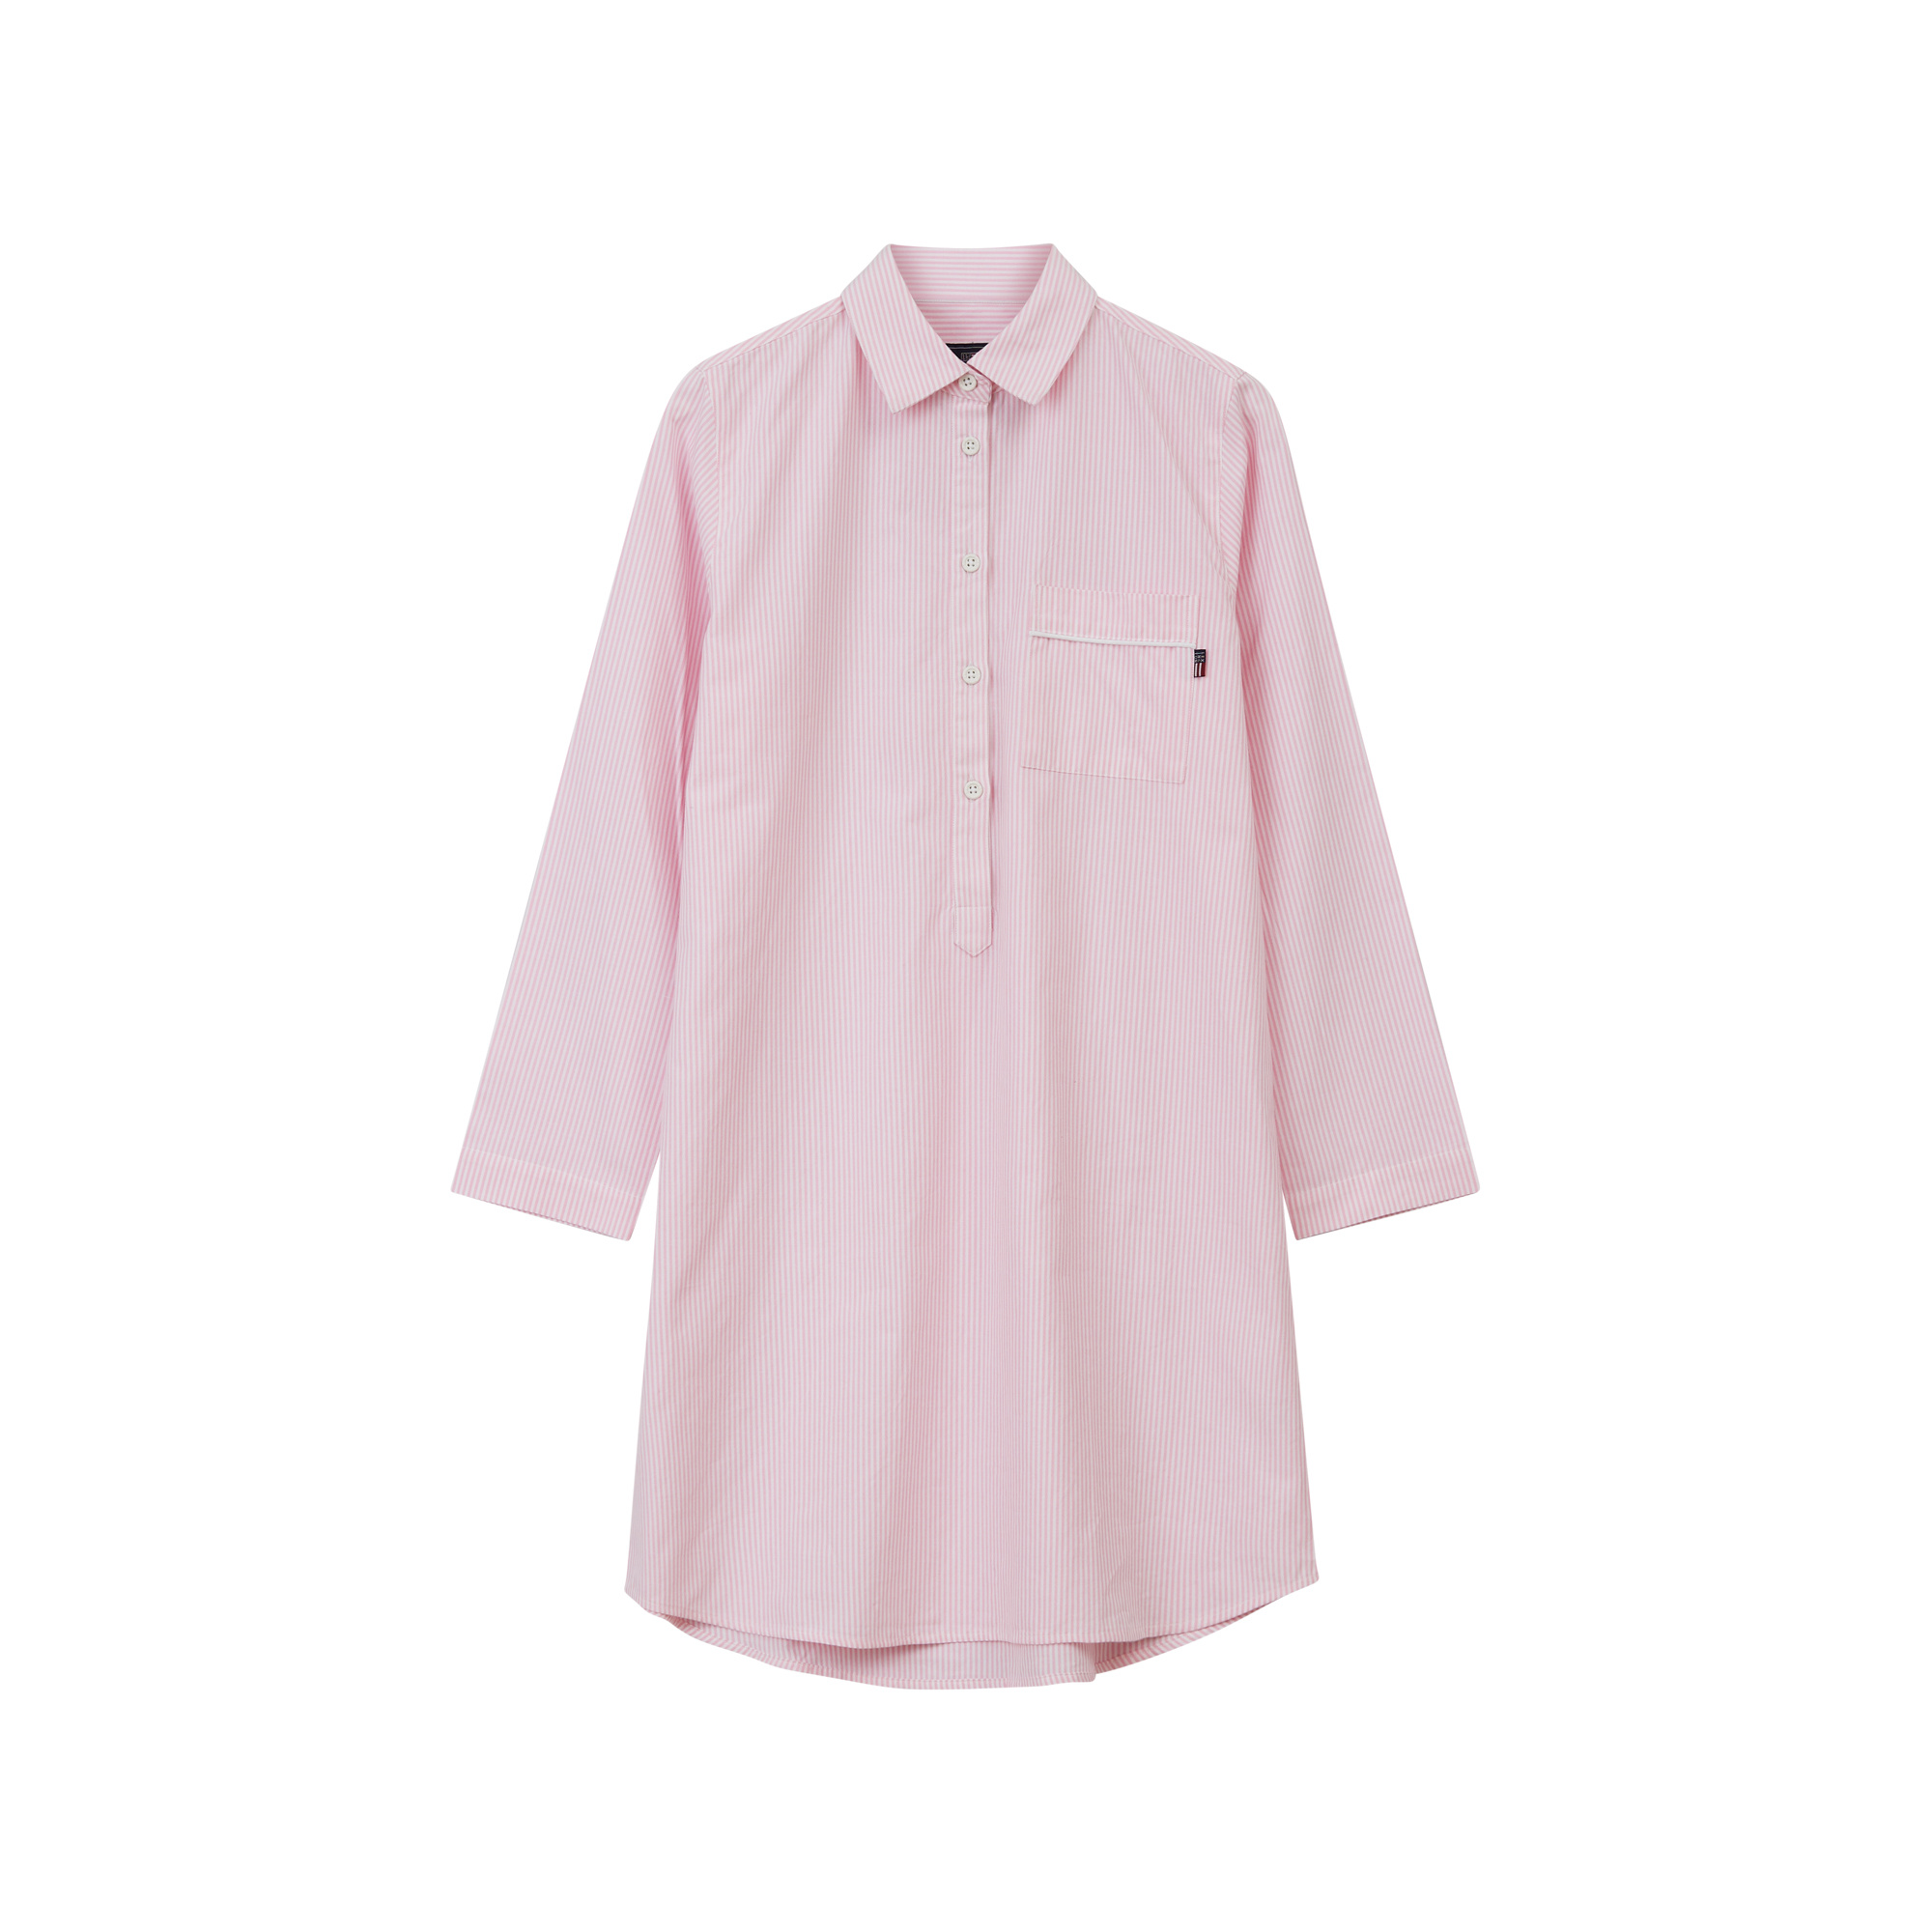 Women's Organic Cotton Nightshirt, Pink/White